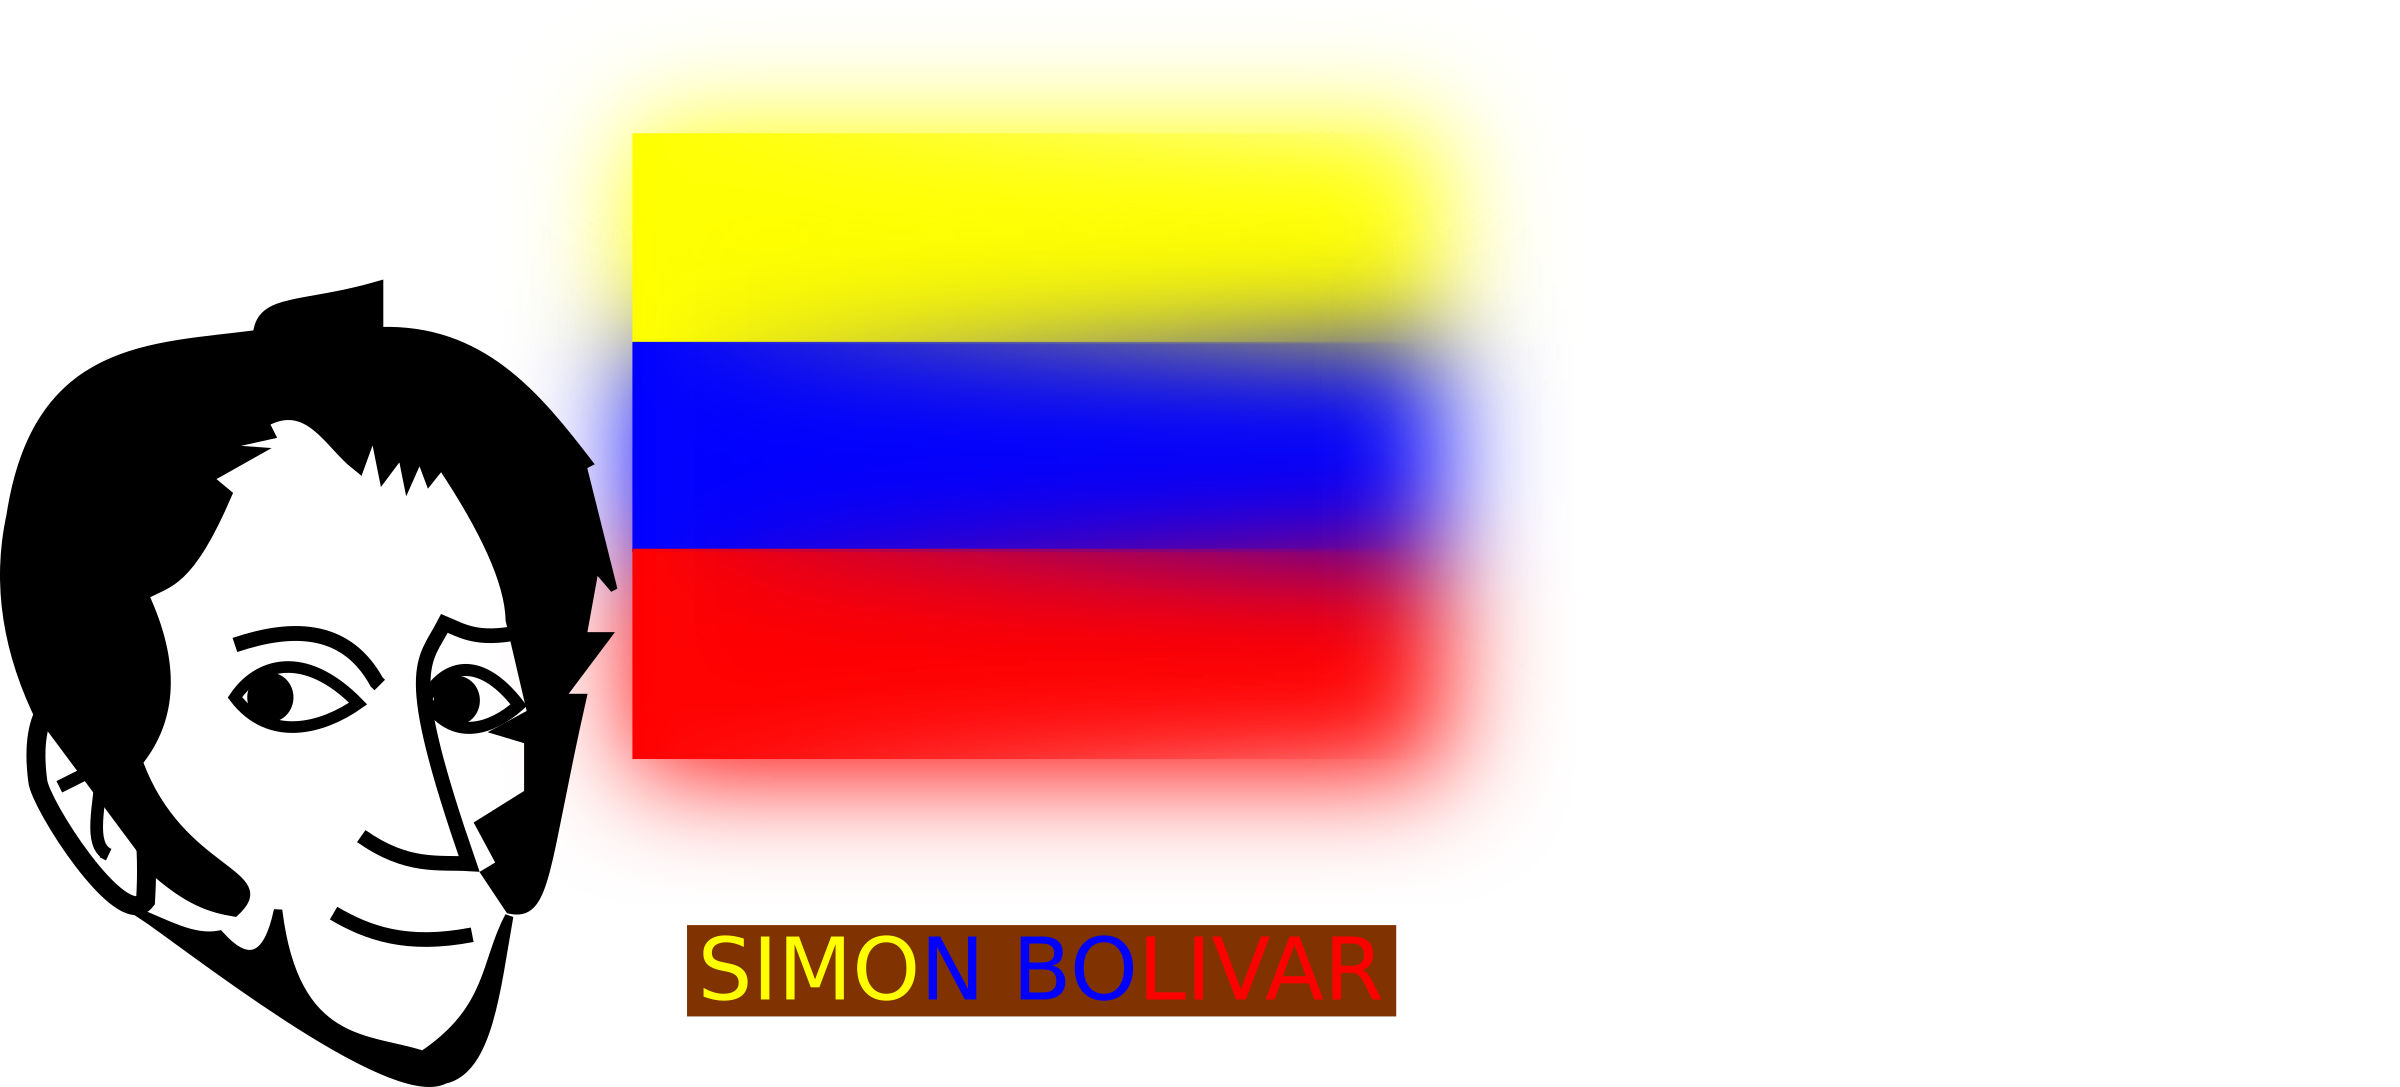 SIMON BOLIVAR by Kajapo